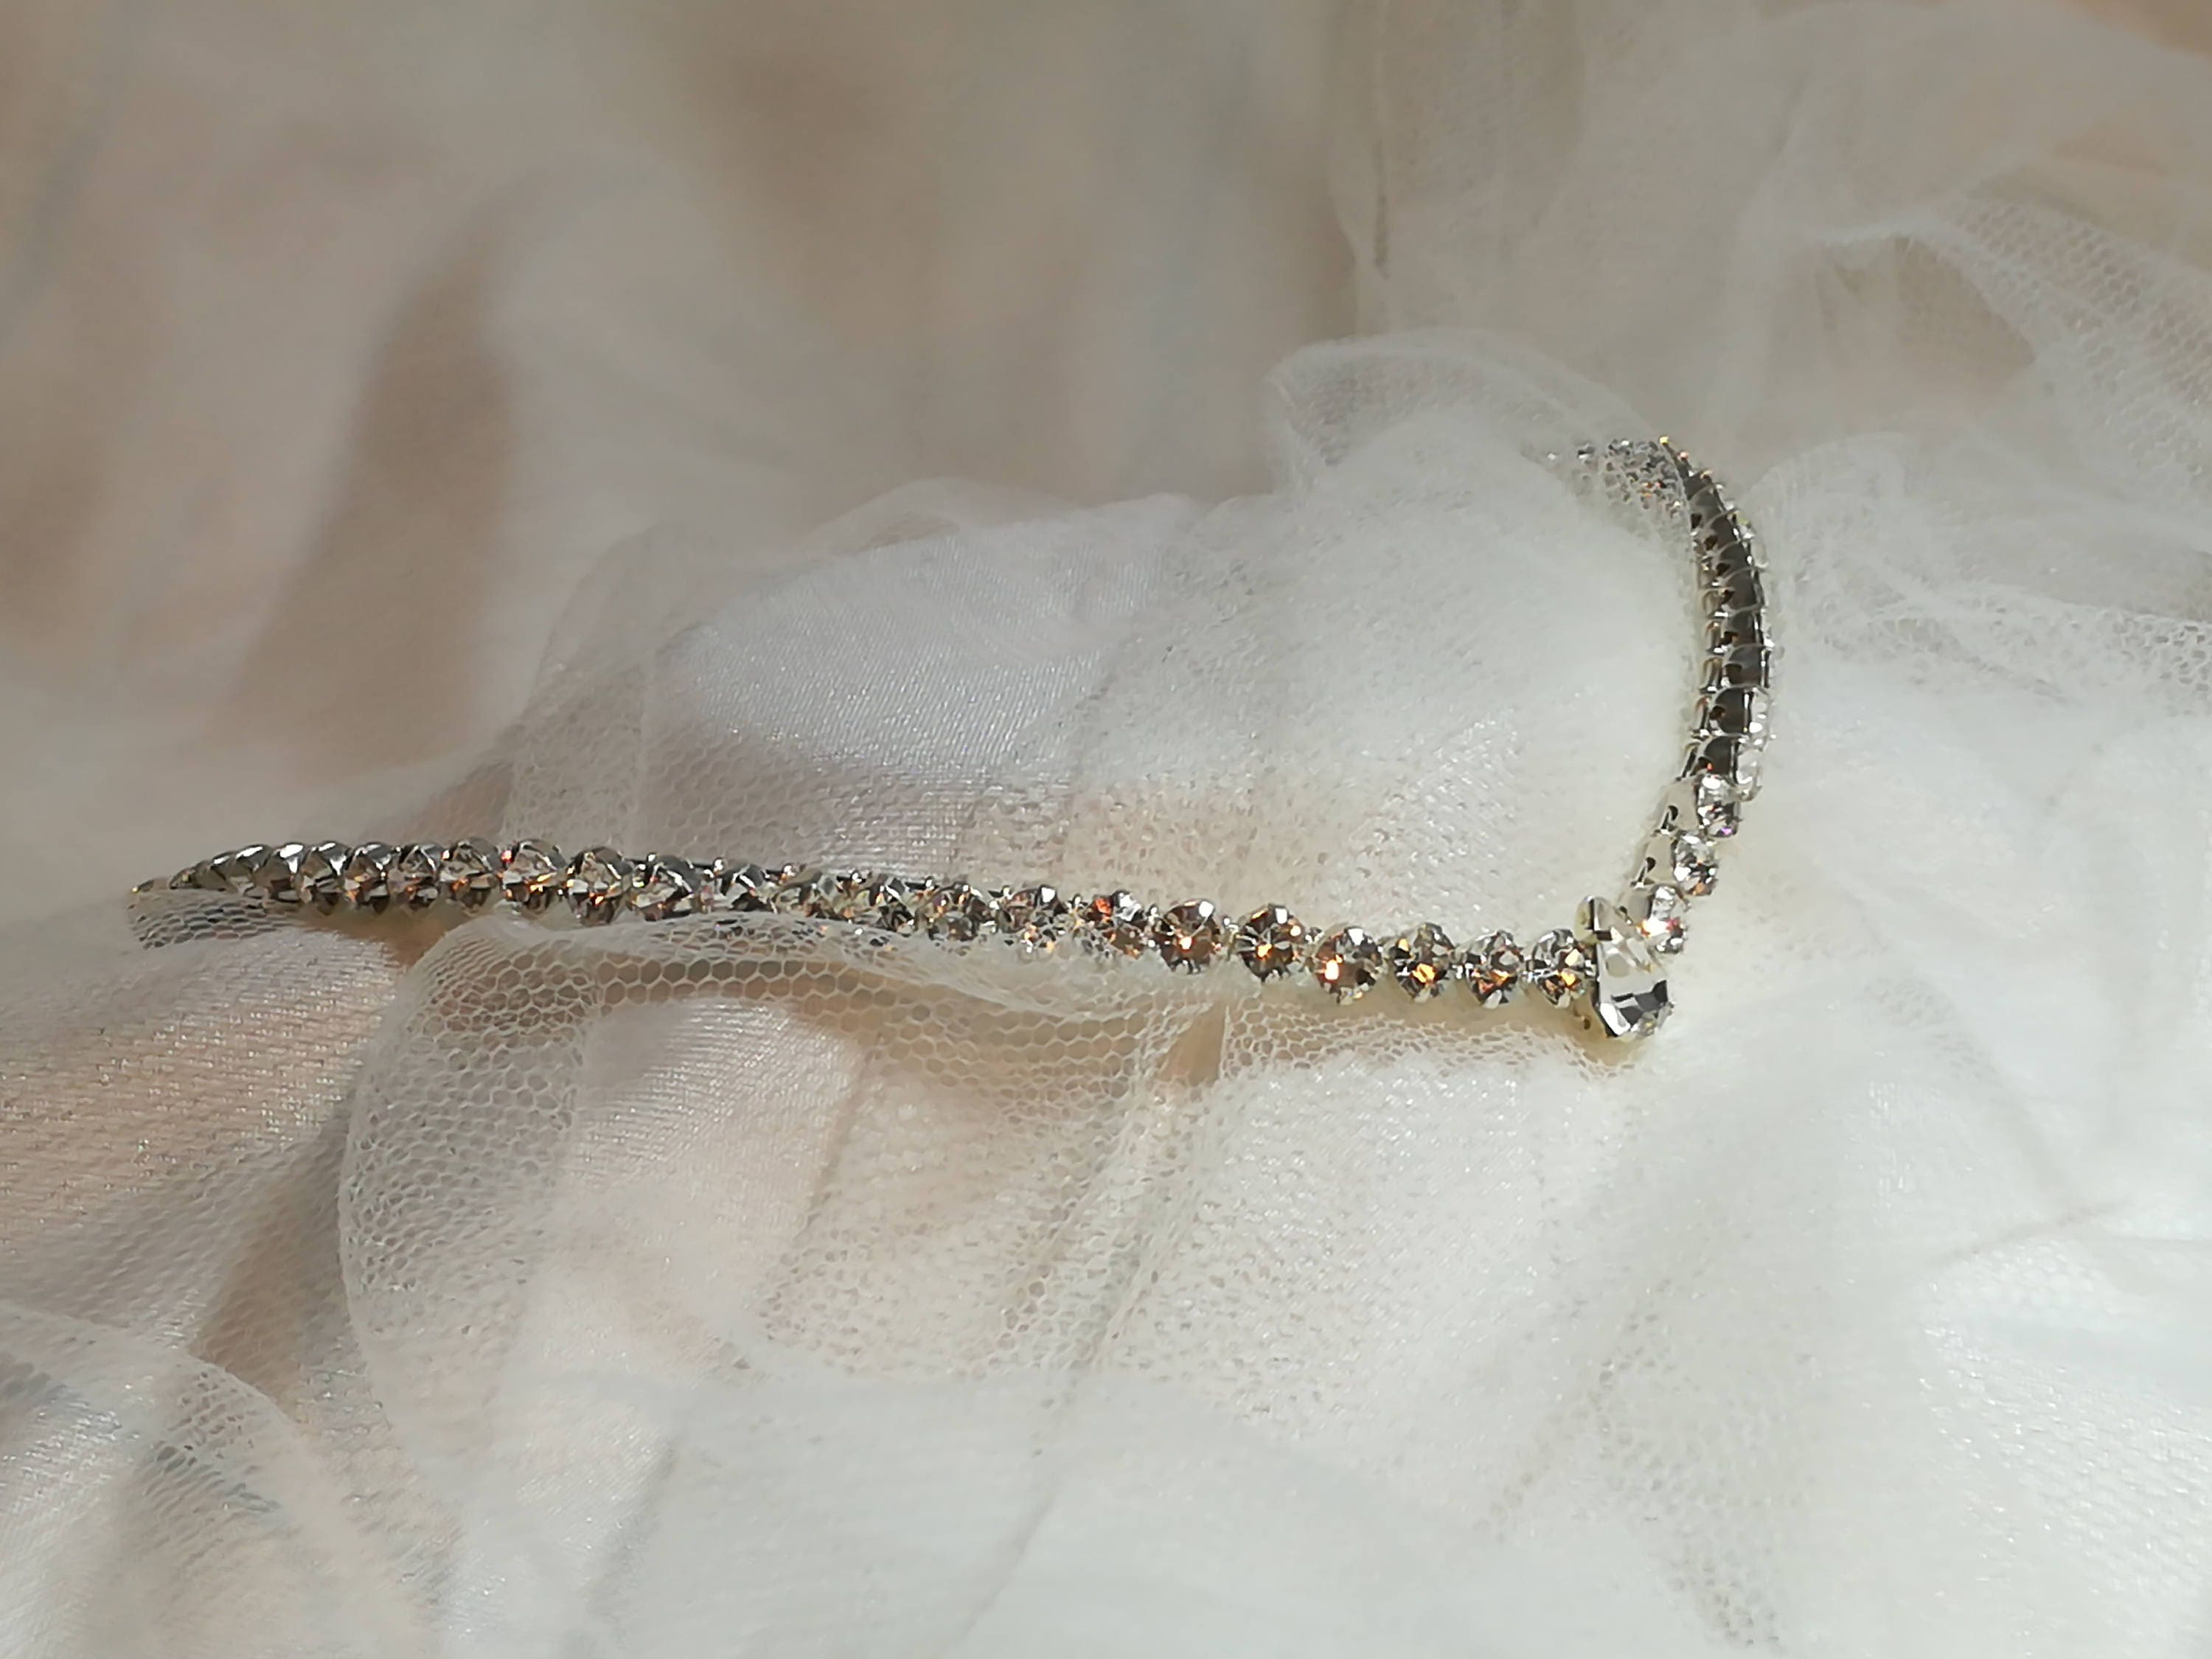 Handmade wedding   bridal   forehead   headband tiara   circlet  brow band tiara  swarovski diamante single row